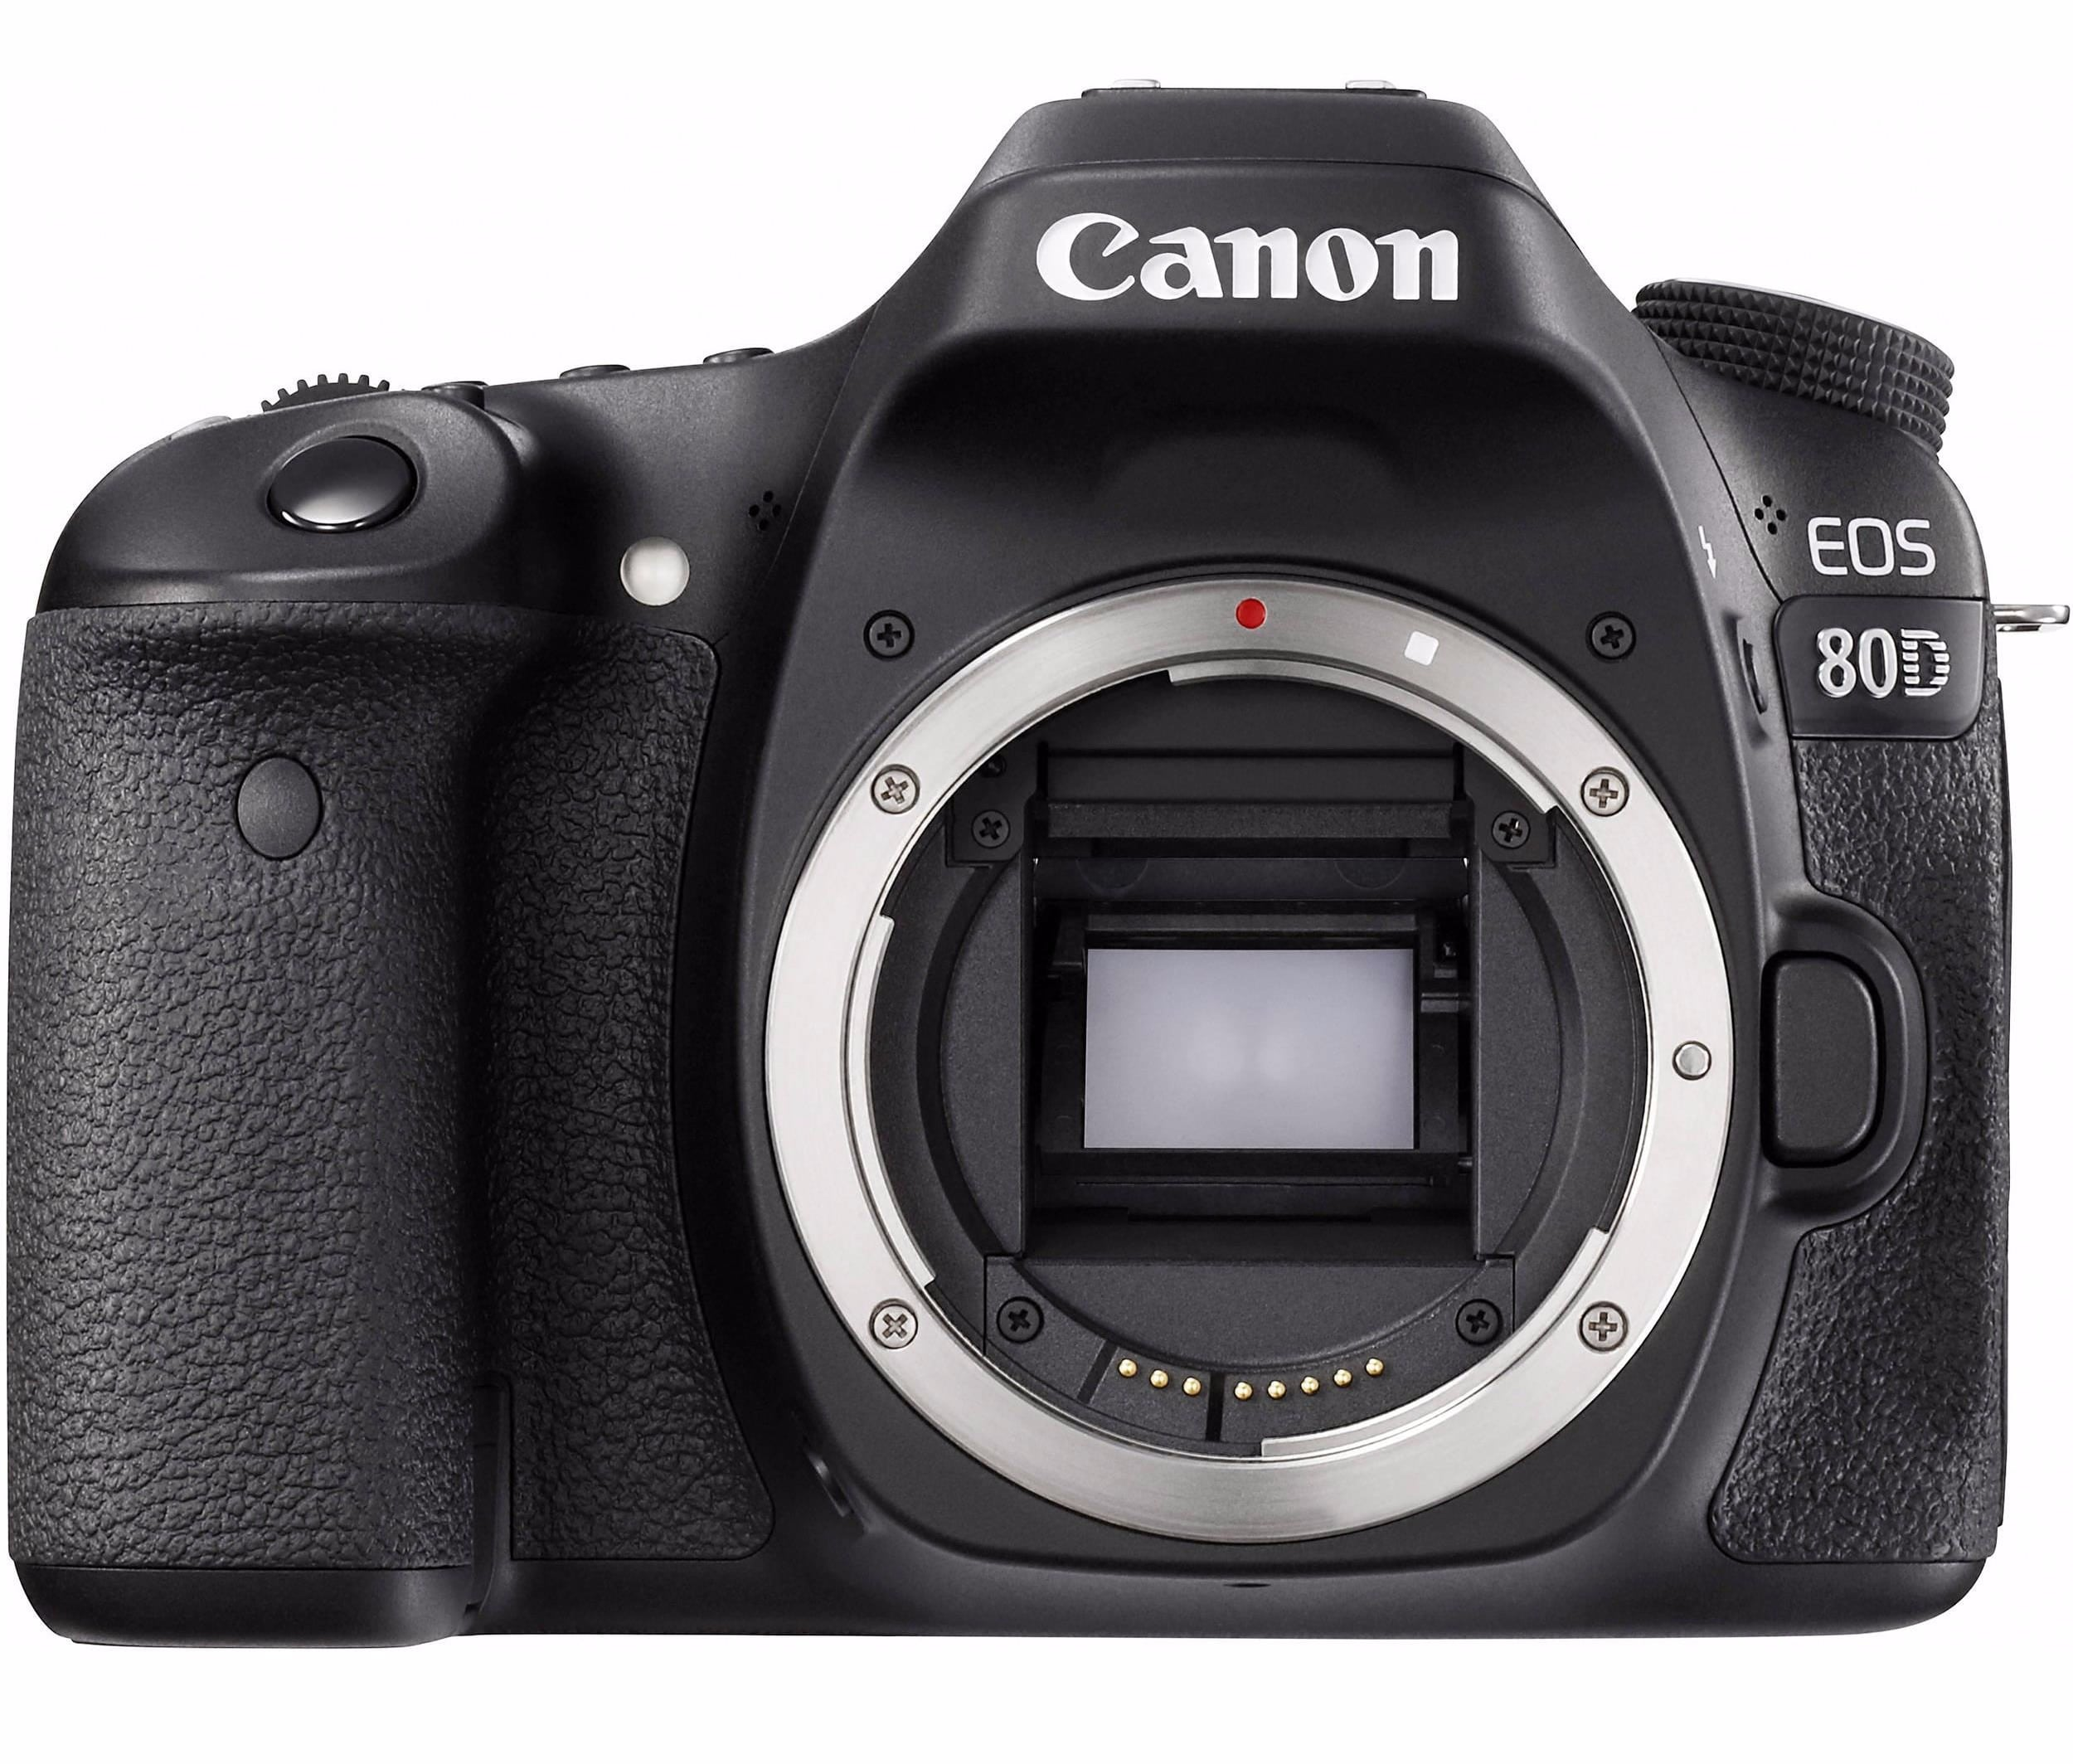 Divine Min Image Facts You Need To Know About Canon Eos Canon 80d Release Date Uk Canon 80d Mark Ii Release Date dpreview Canon 80d Release Date